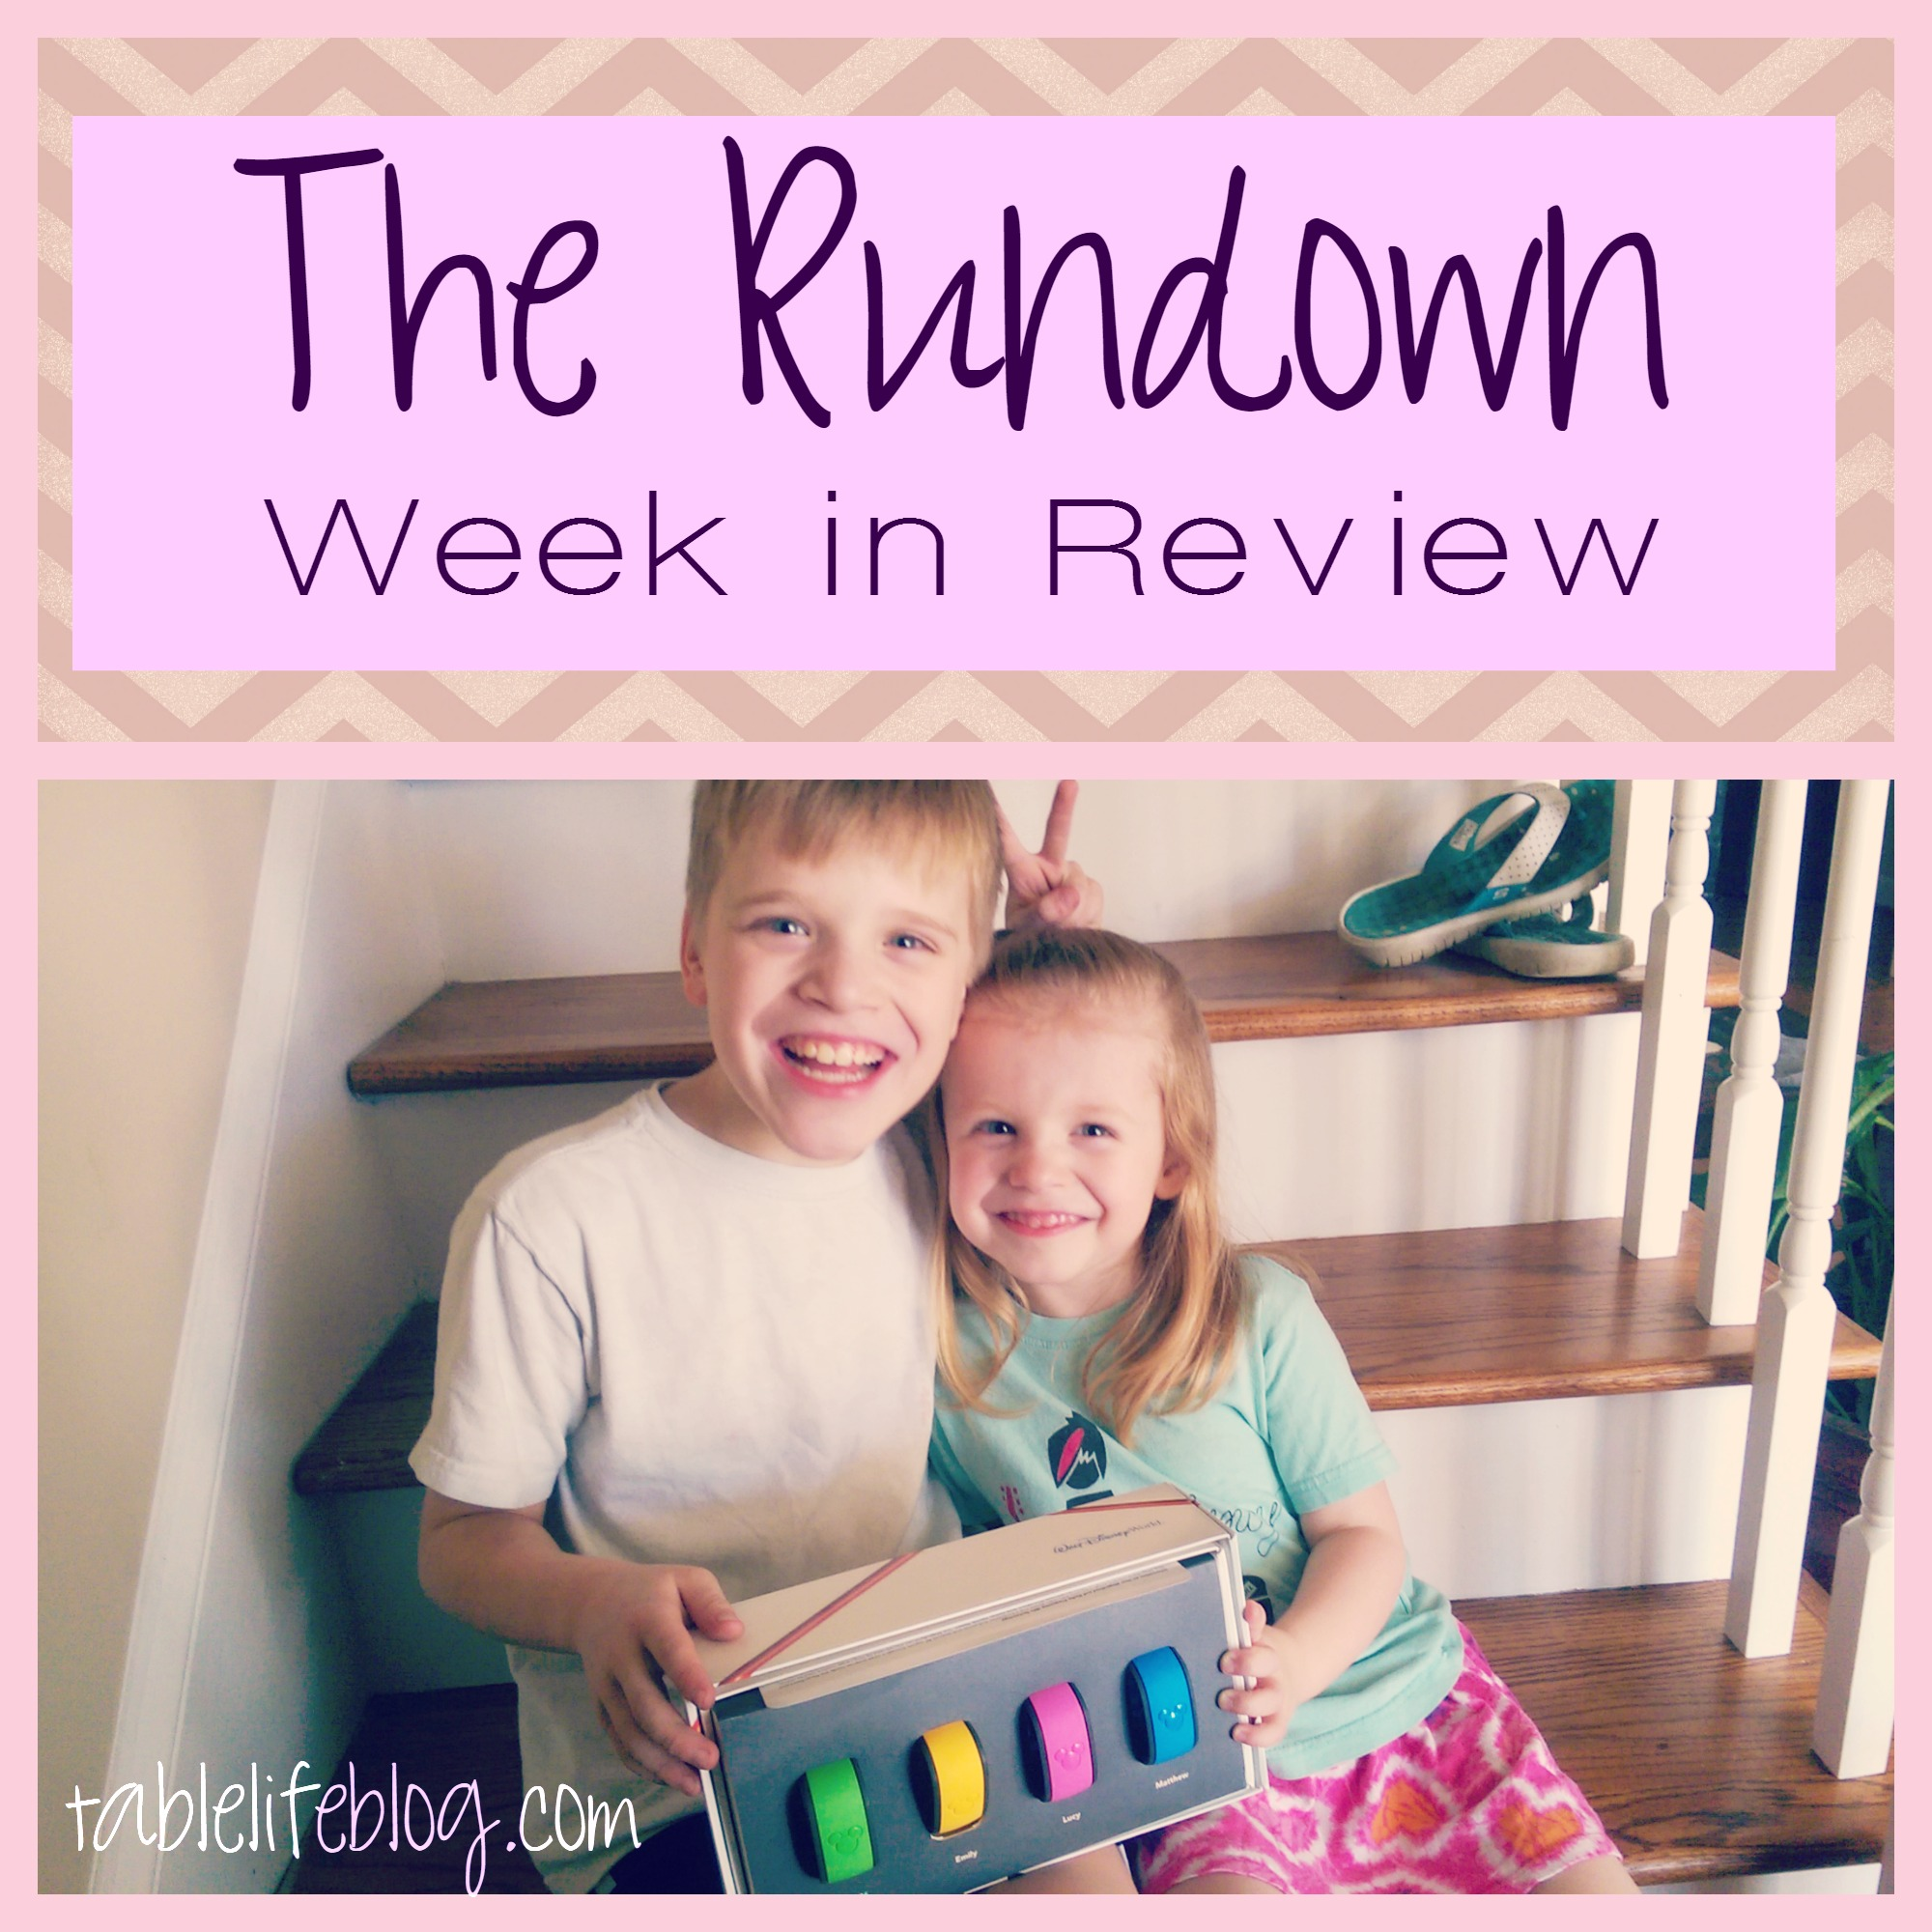 The Rundown - Week in Review - Week 10